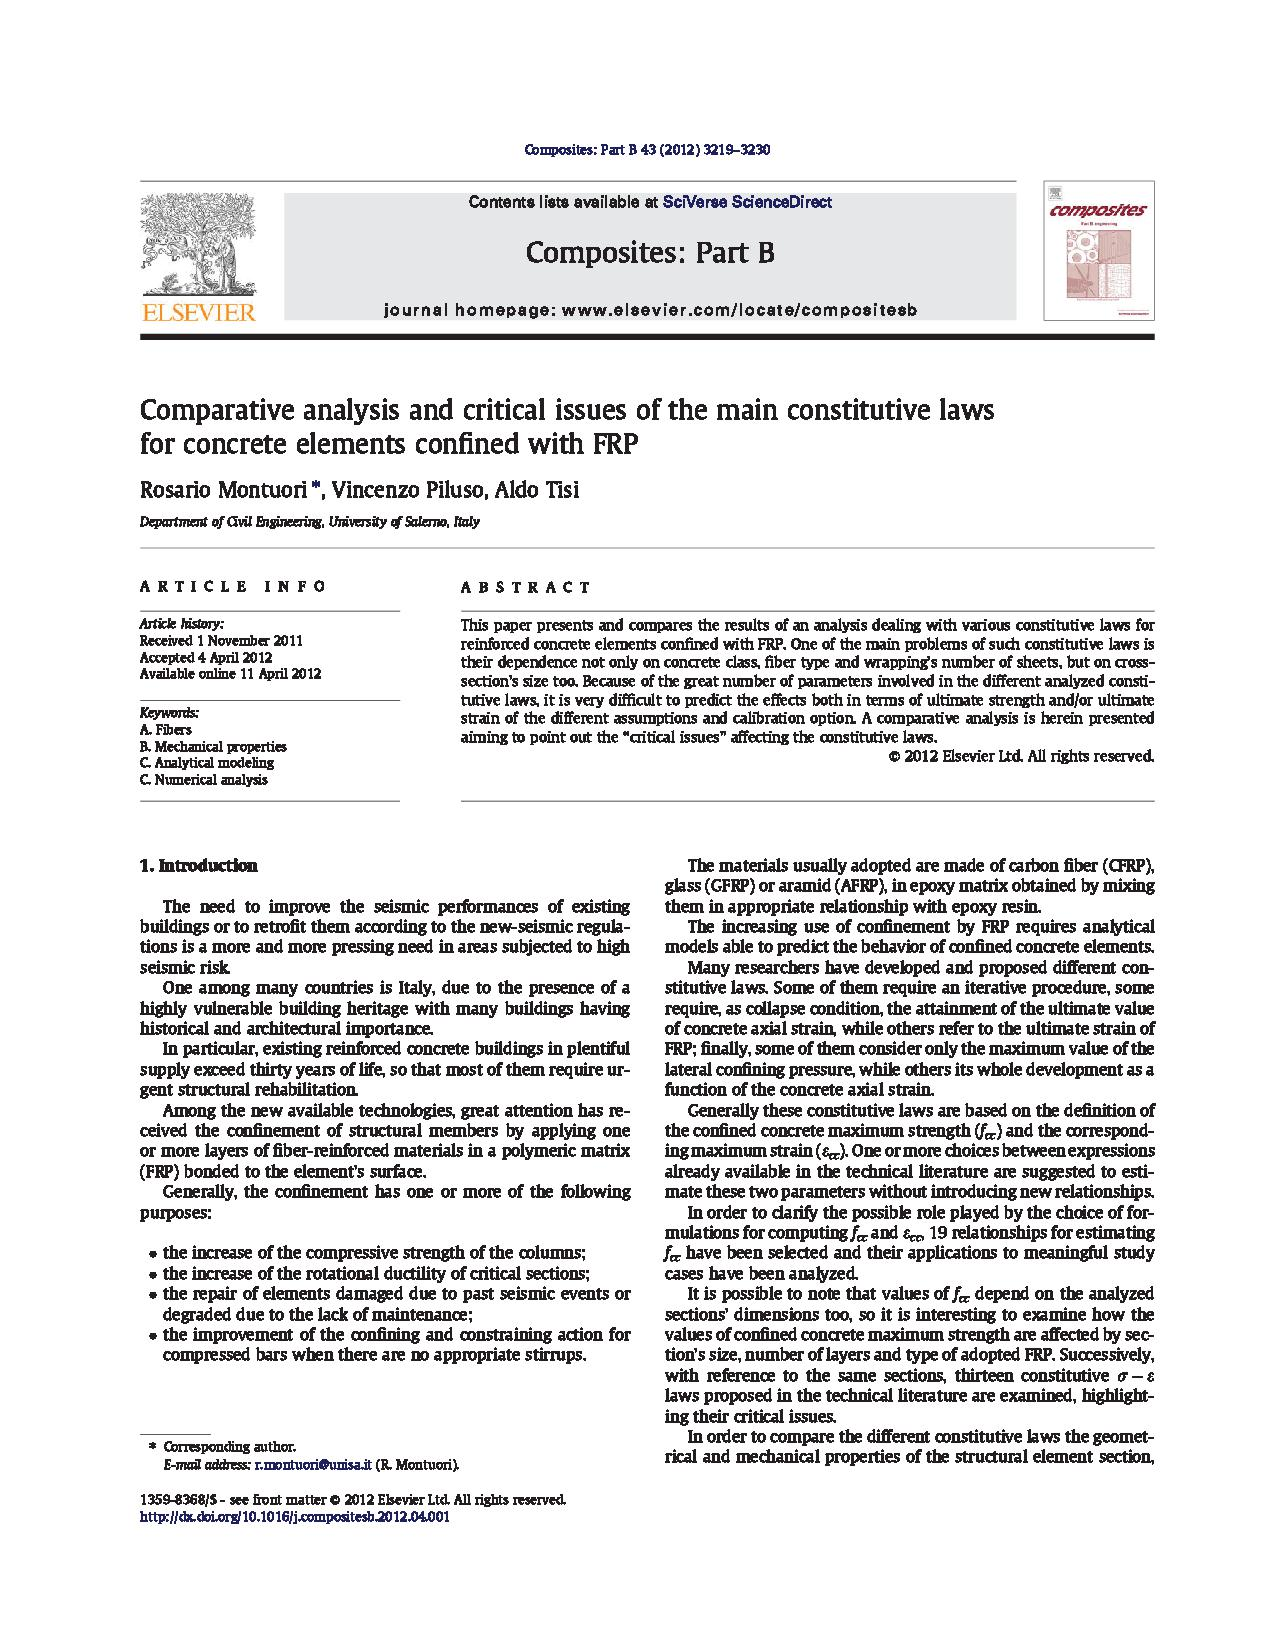 Comparative analysis and critical issues of the mail constitutive laws for concerete elements confined with FRP